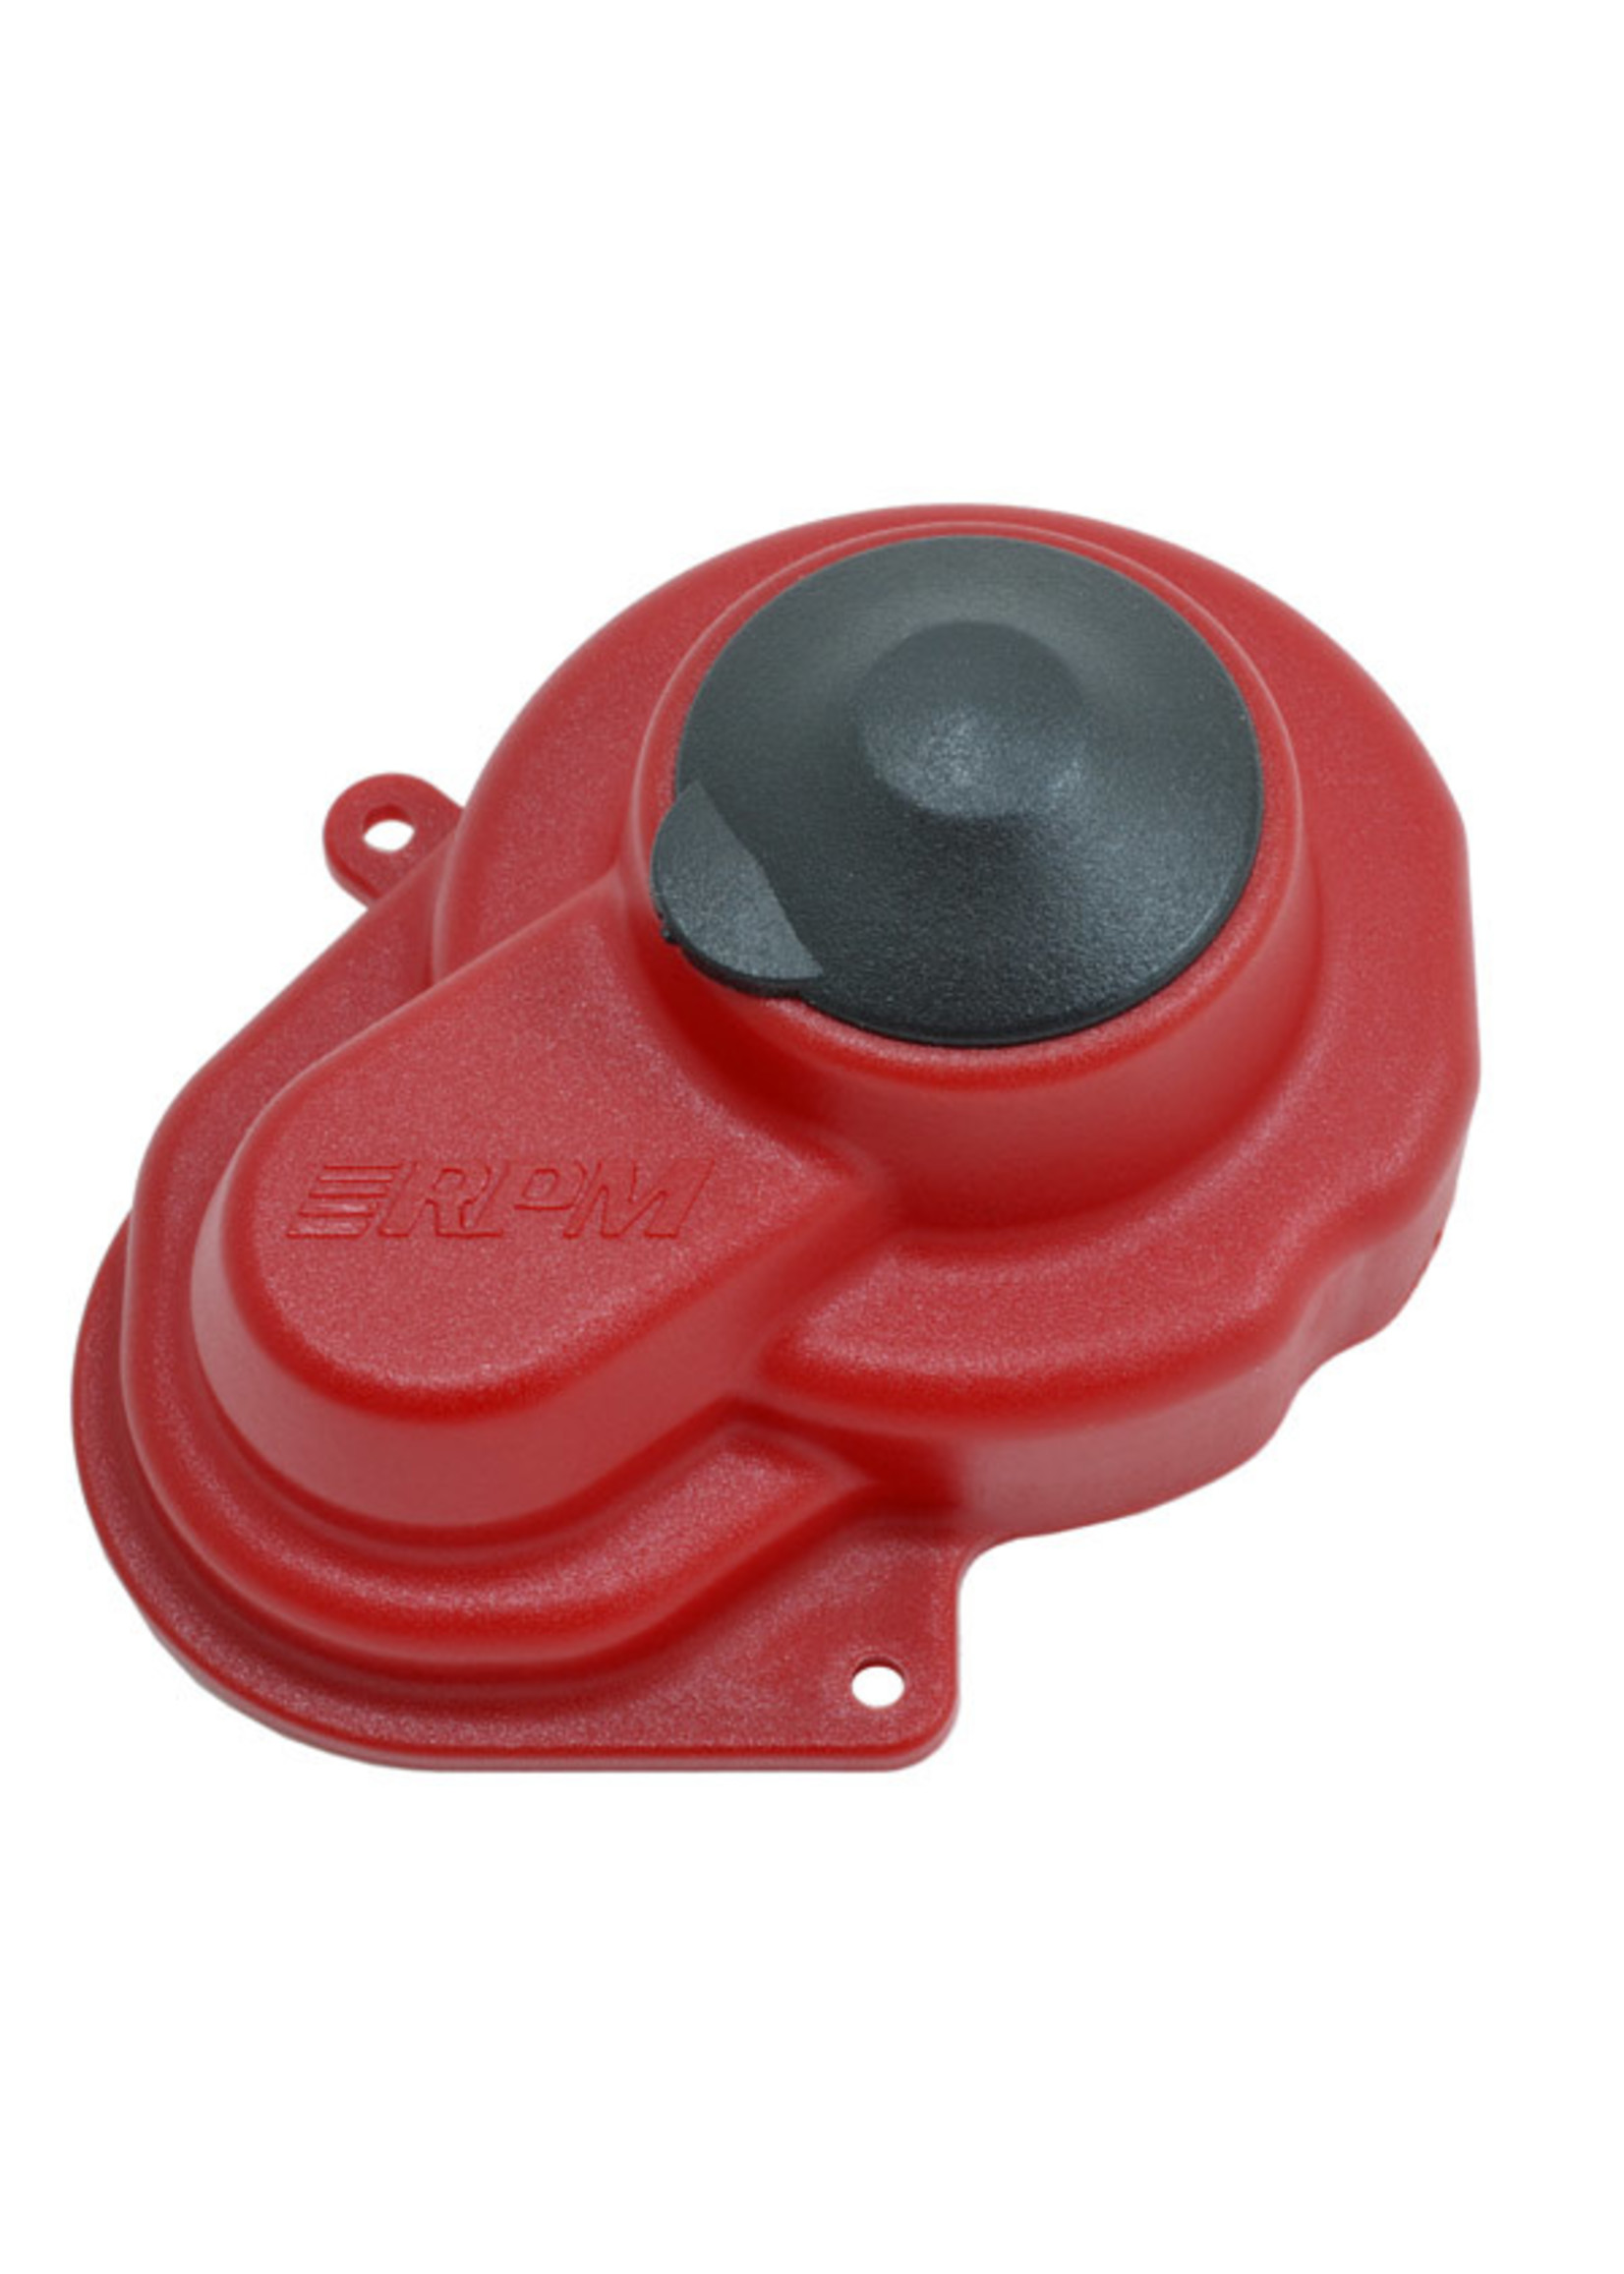 RPM RPM80529 RPM Sealed Gear Cover, for Traxxas e-Rustler/Stampede 2wd/Bandit/Slash, Red